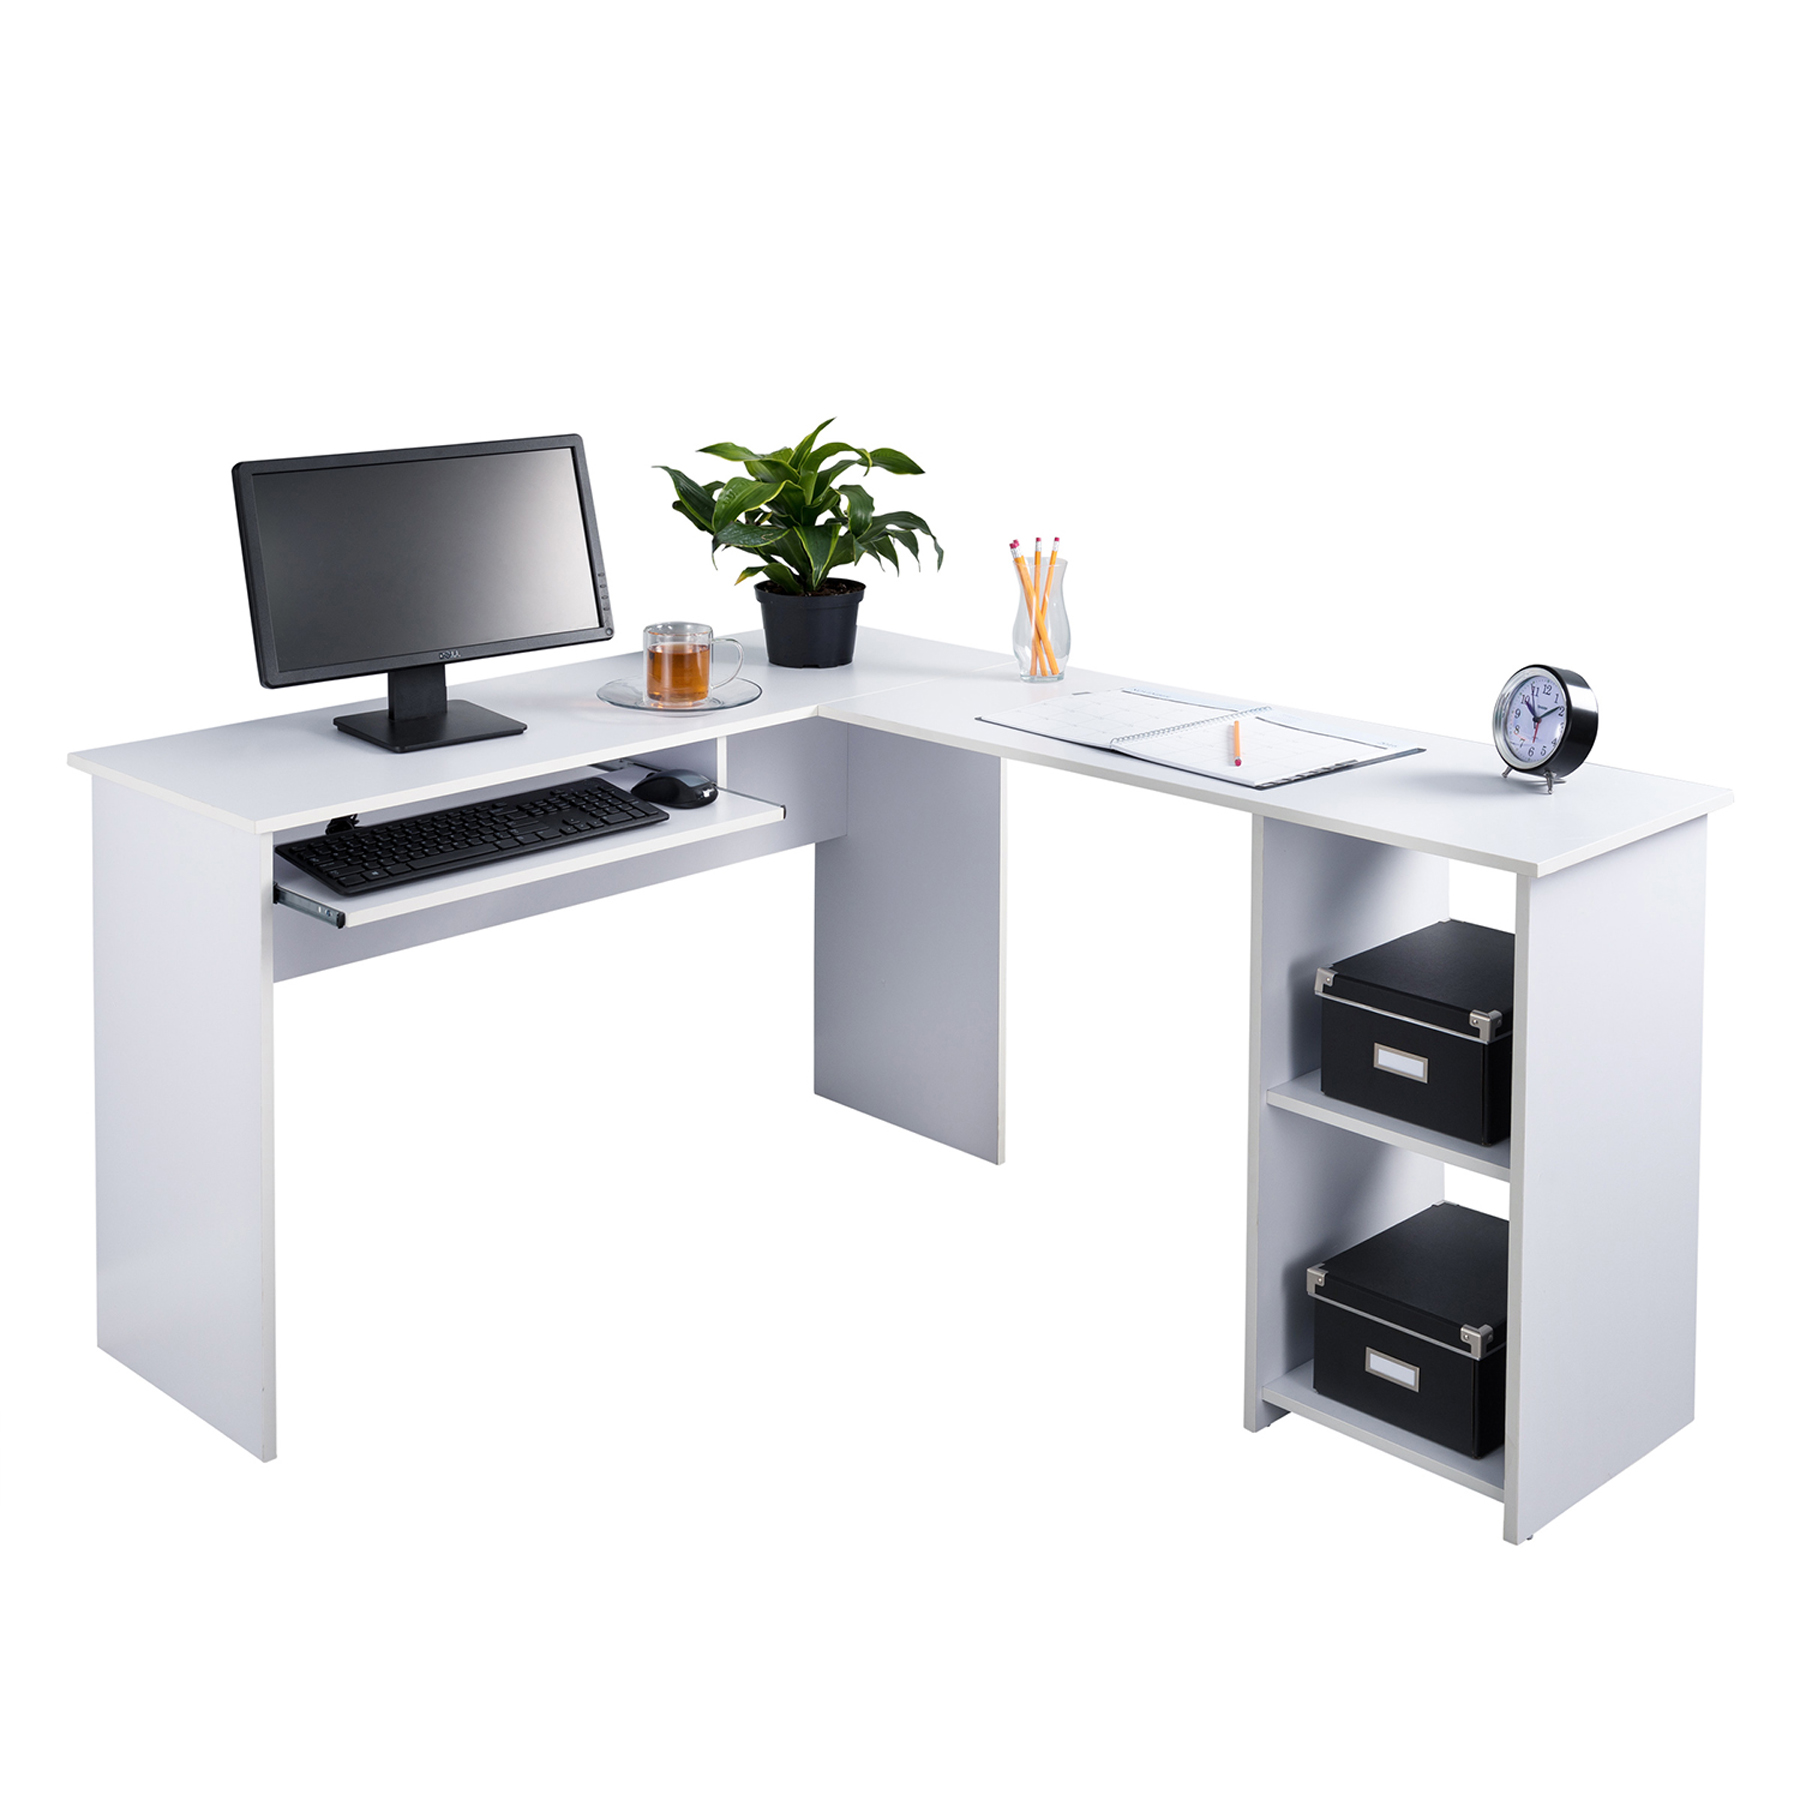 Merveilleux Fineboard L Shaped Office Corner Desk 2 Side Shelves, White